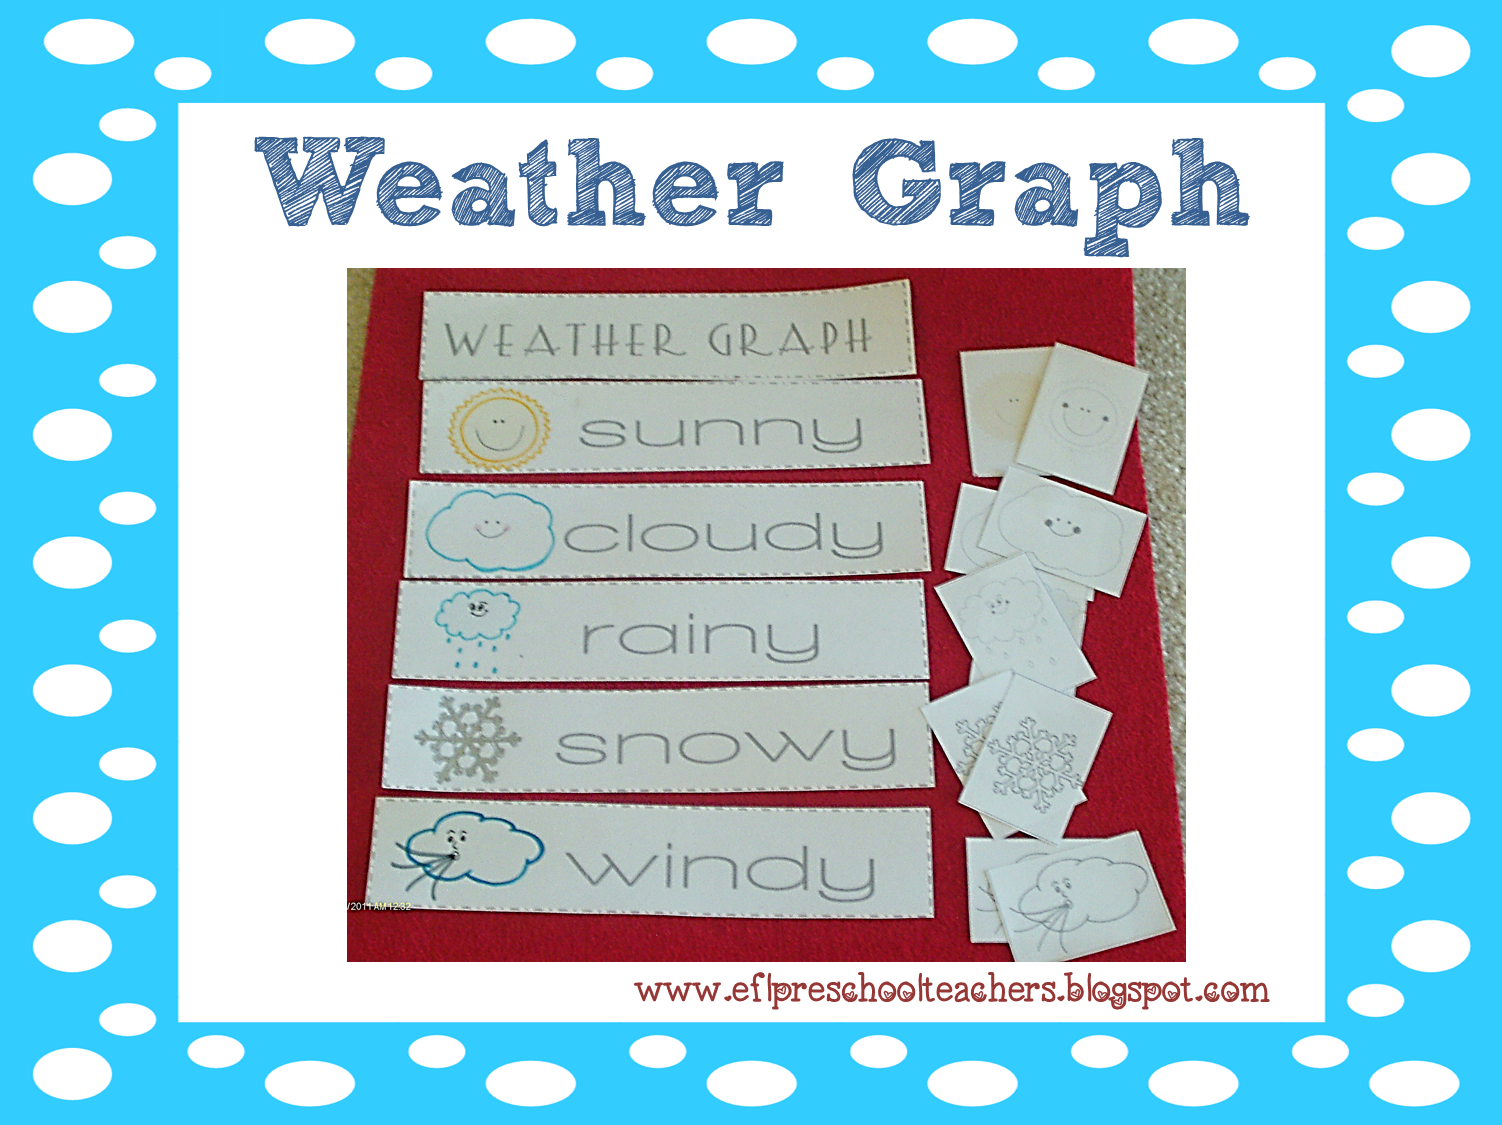 ESL/EFL Preschool Teachers: Weather Theme Resources for the ELL